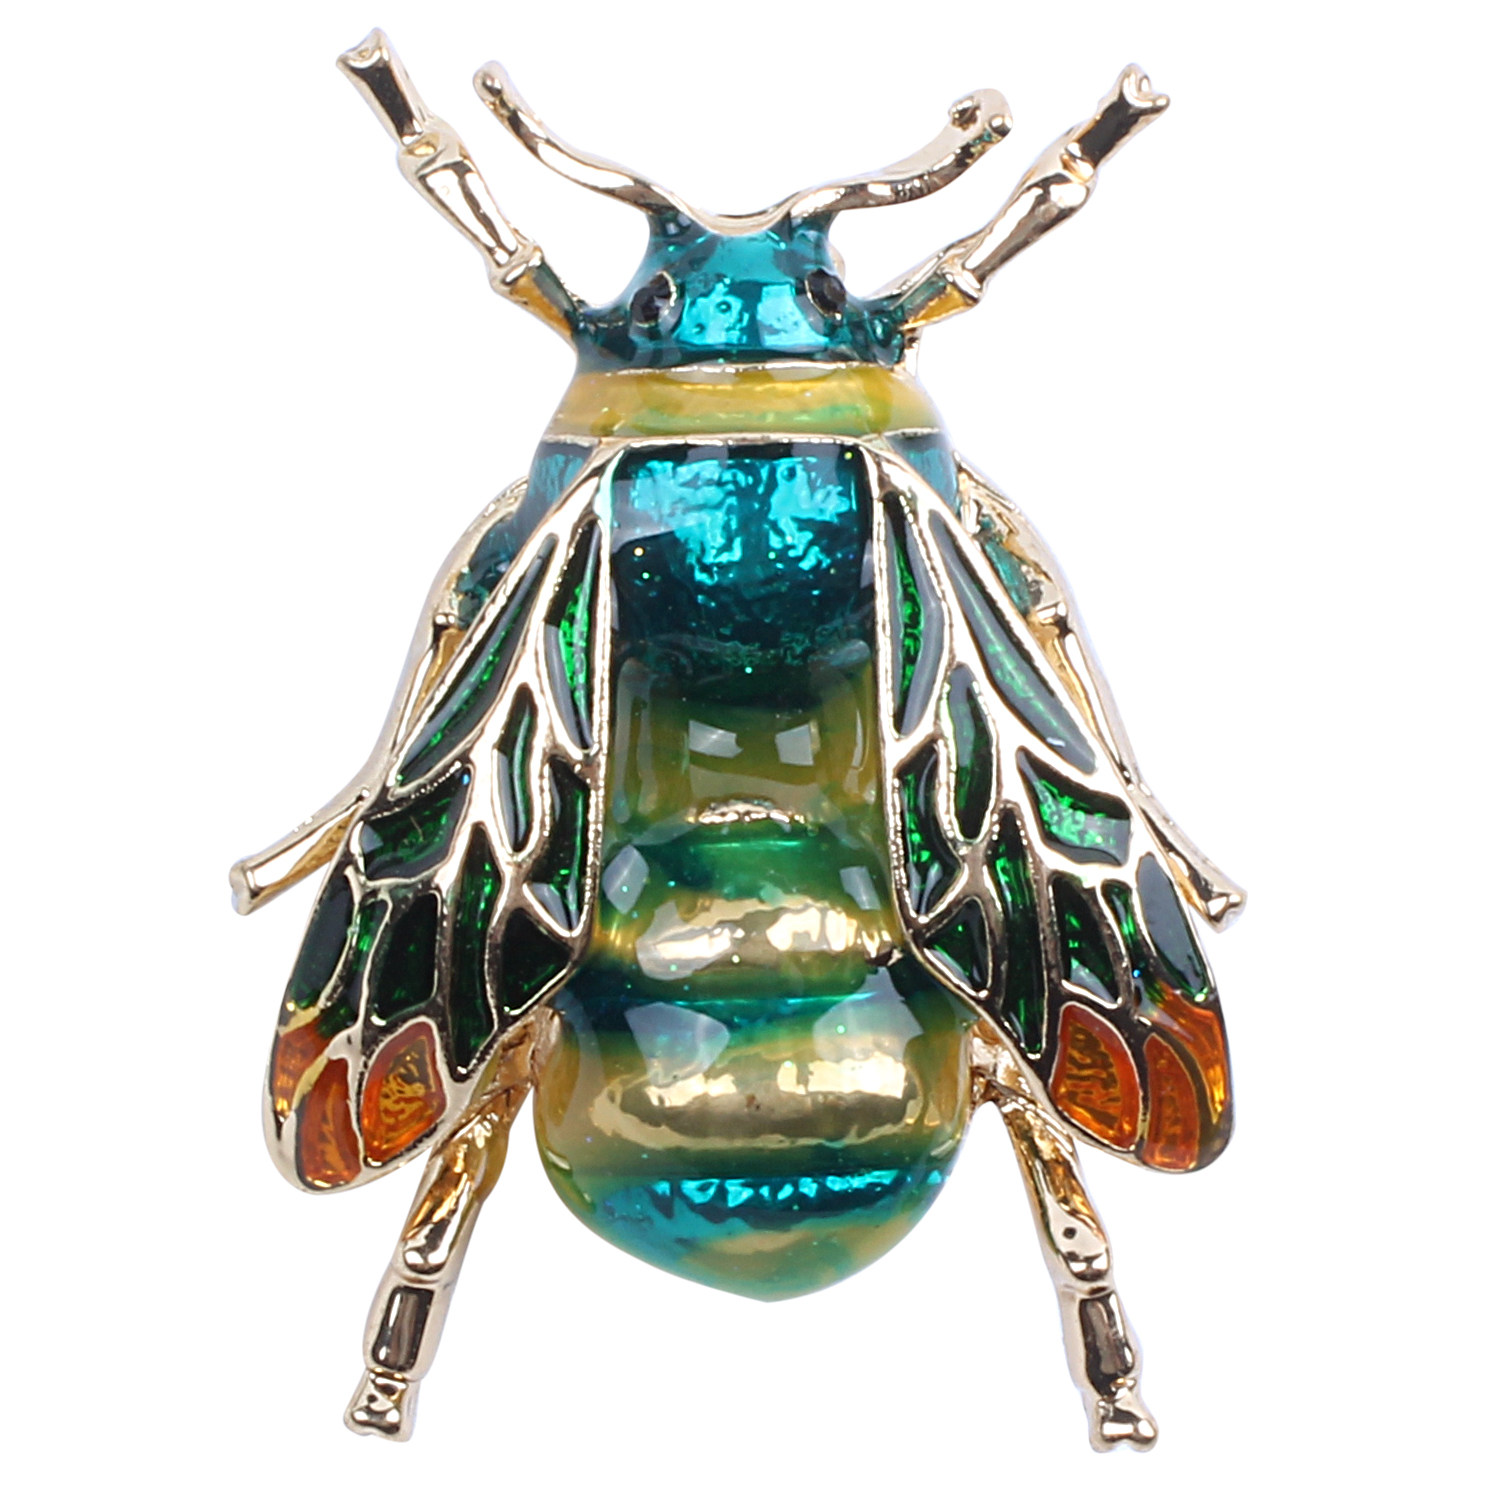 Fashionable Bumble Bee Crystal Brooch Pin Costume Badge Party Jewelry Gift Green bee